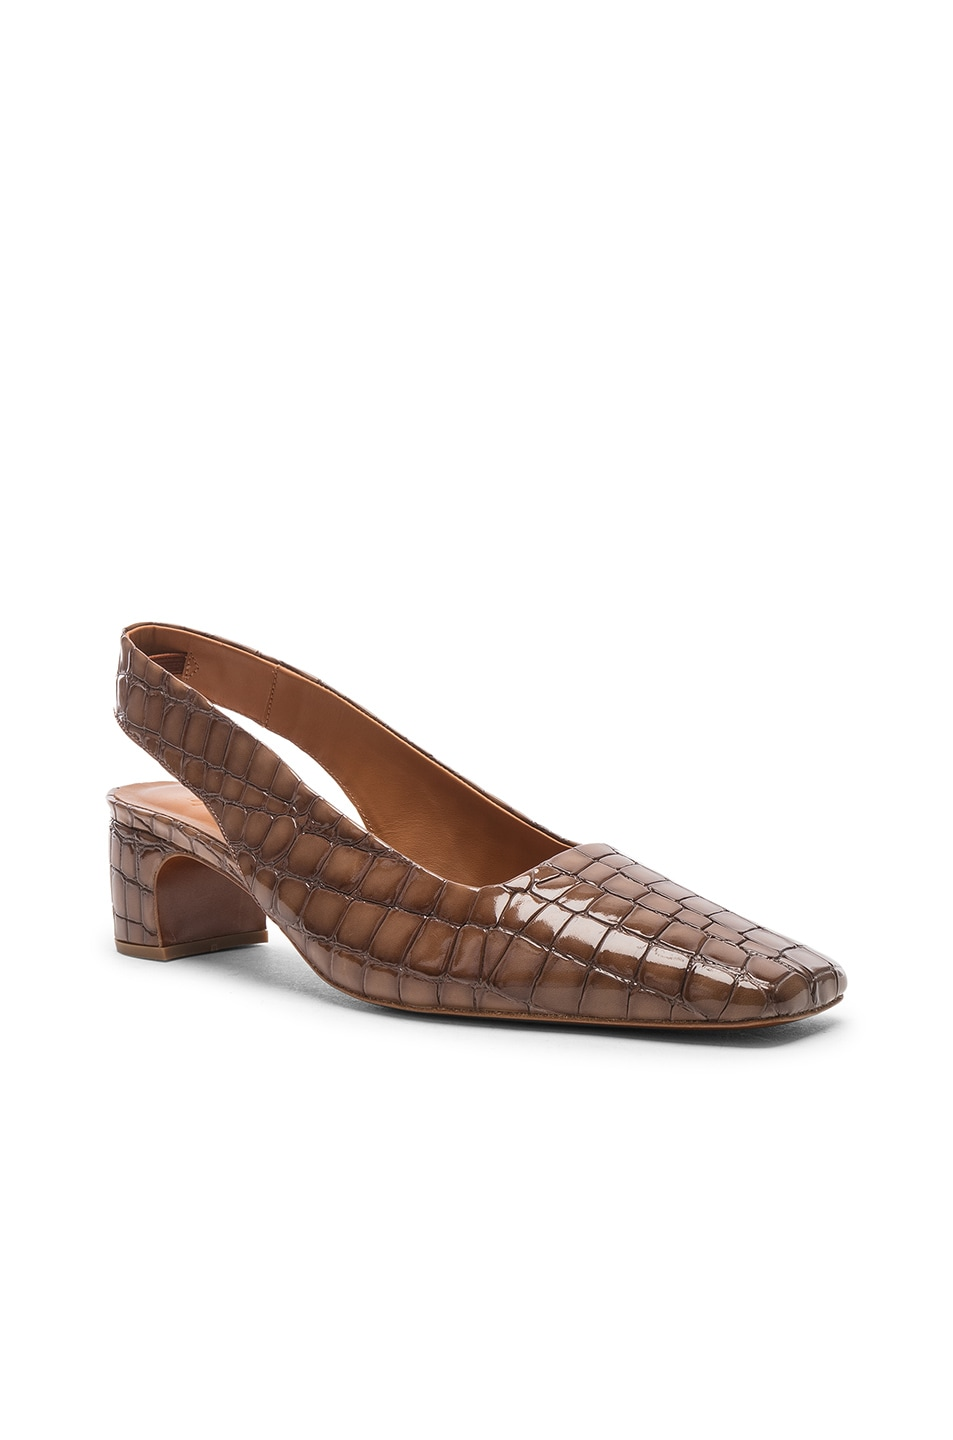 Image 2 of BY FAR Danielle in Brown Croc Embossed Patent